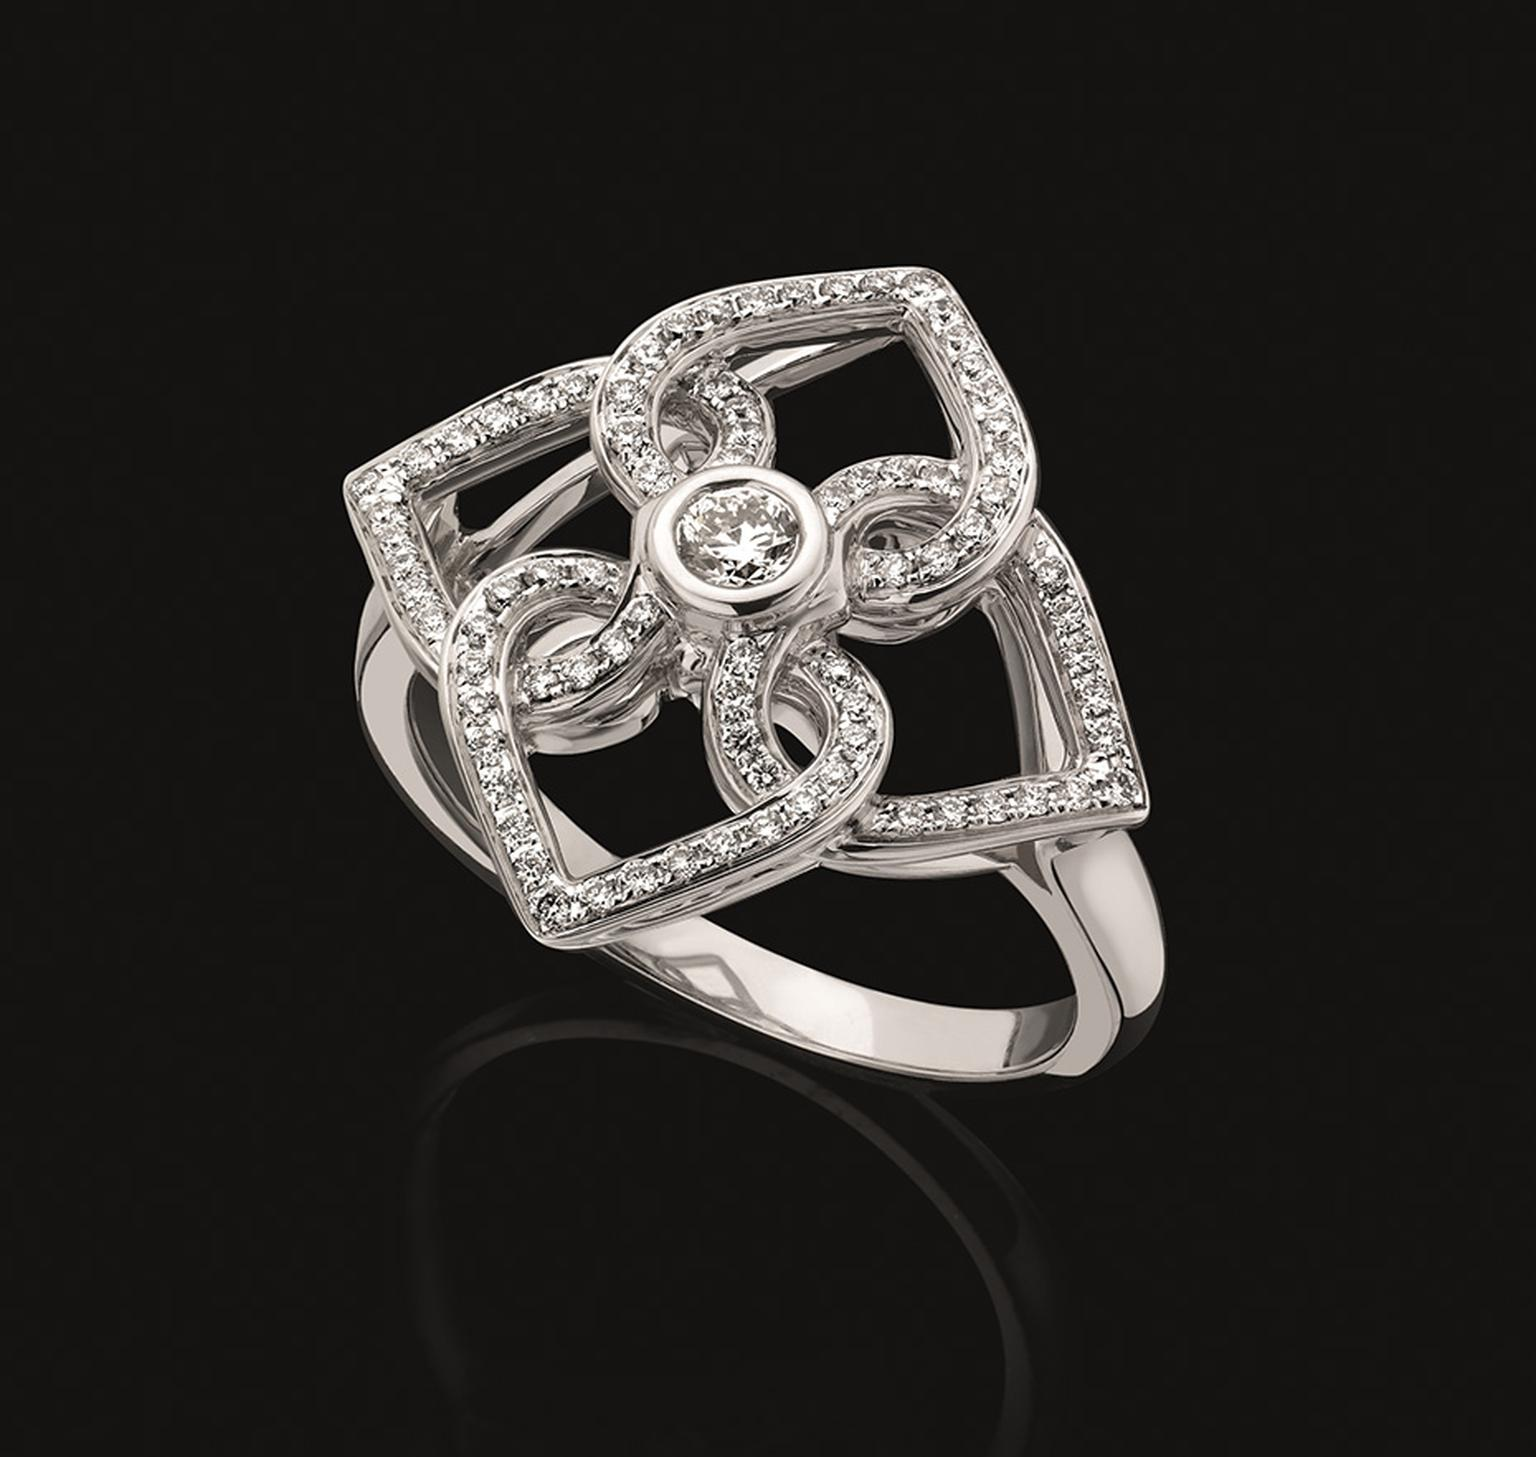 Backes & Strauss Four Heart ring featuring interlocking hearts set with 429 ideal cut round brilliant diamonds